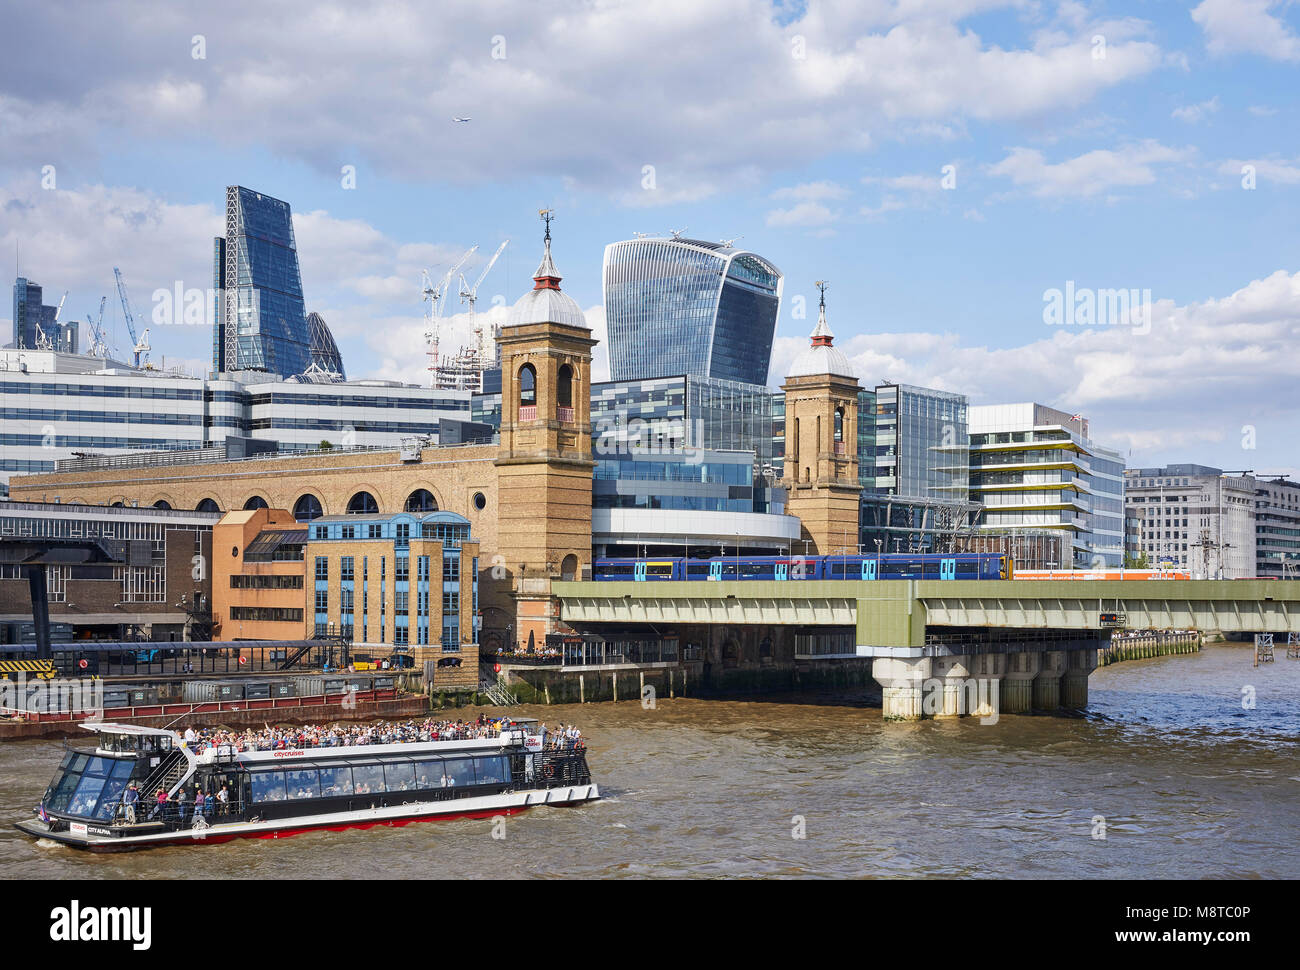 View of the River Thames with 20 Fenchurch Street and Cannon Street Railway Bridge. The River Building, London, - Stock Image